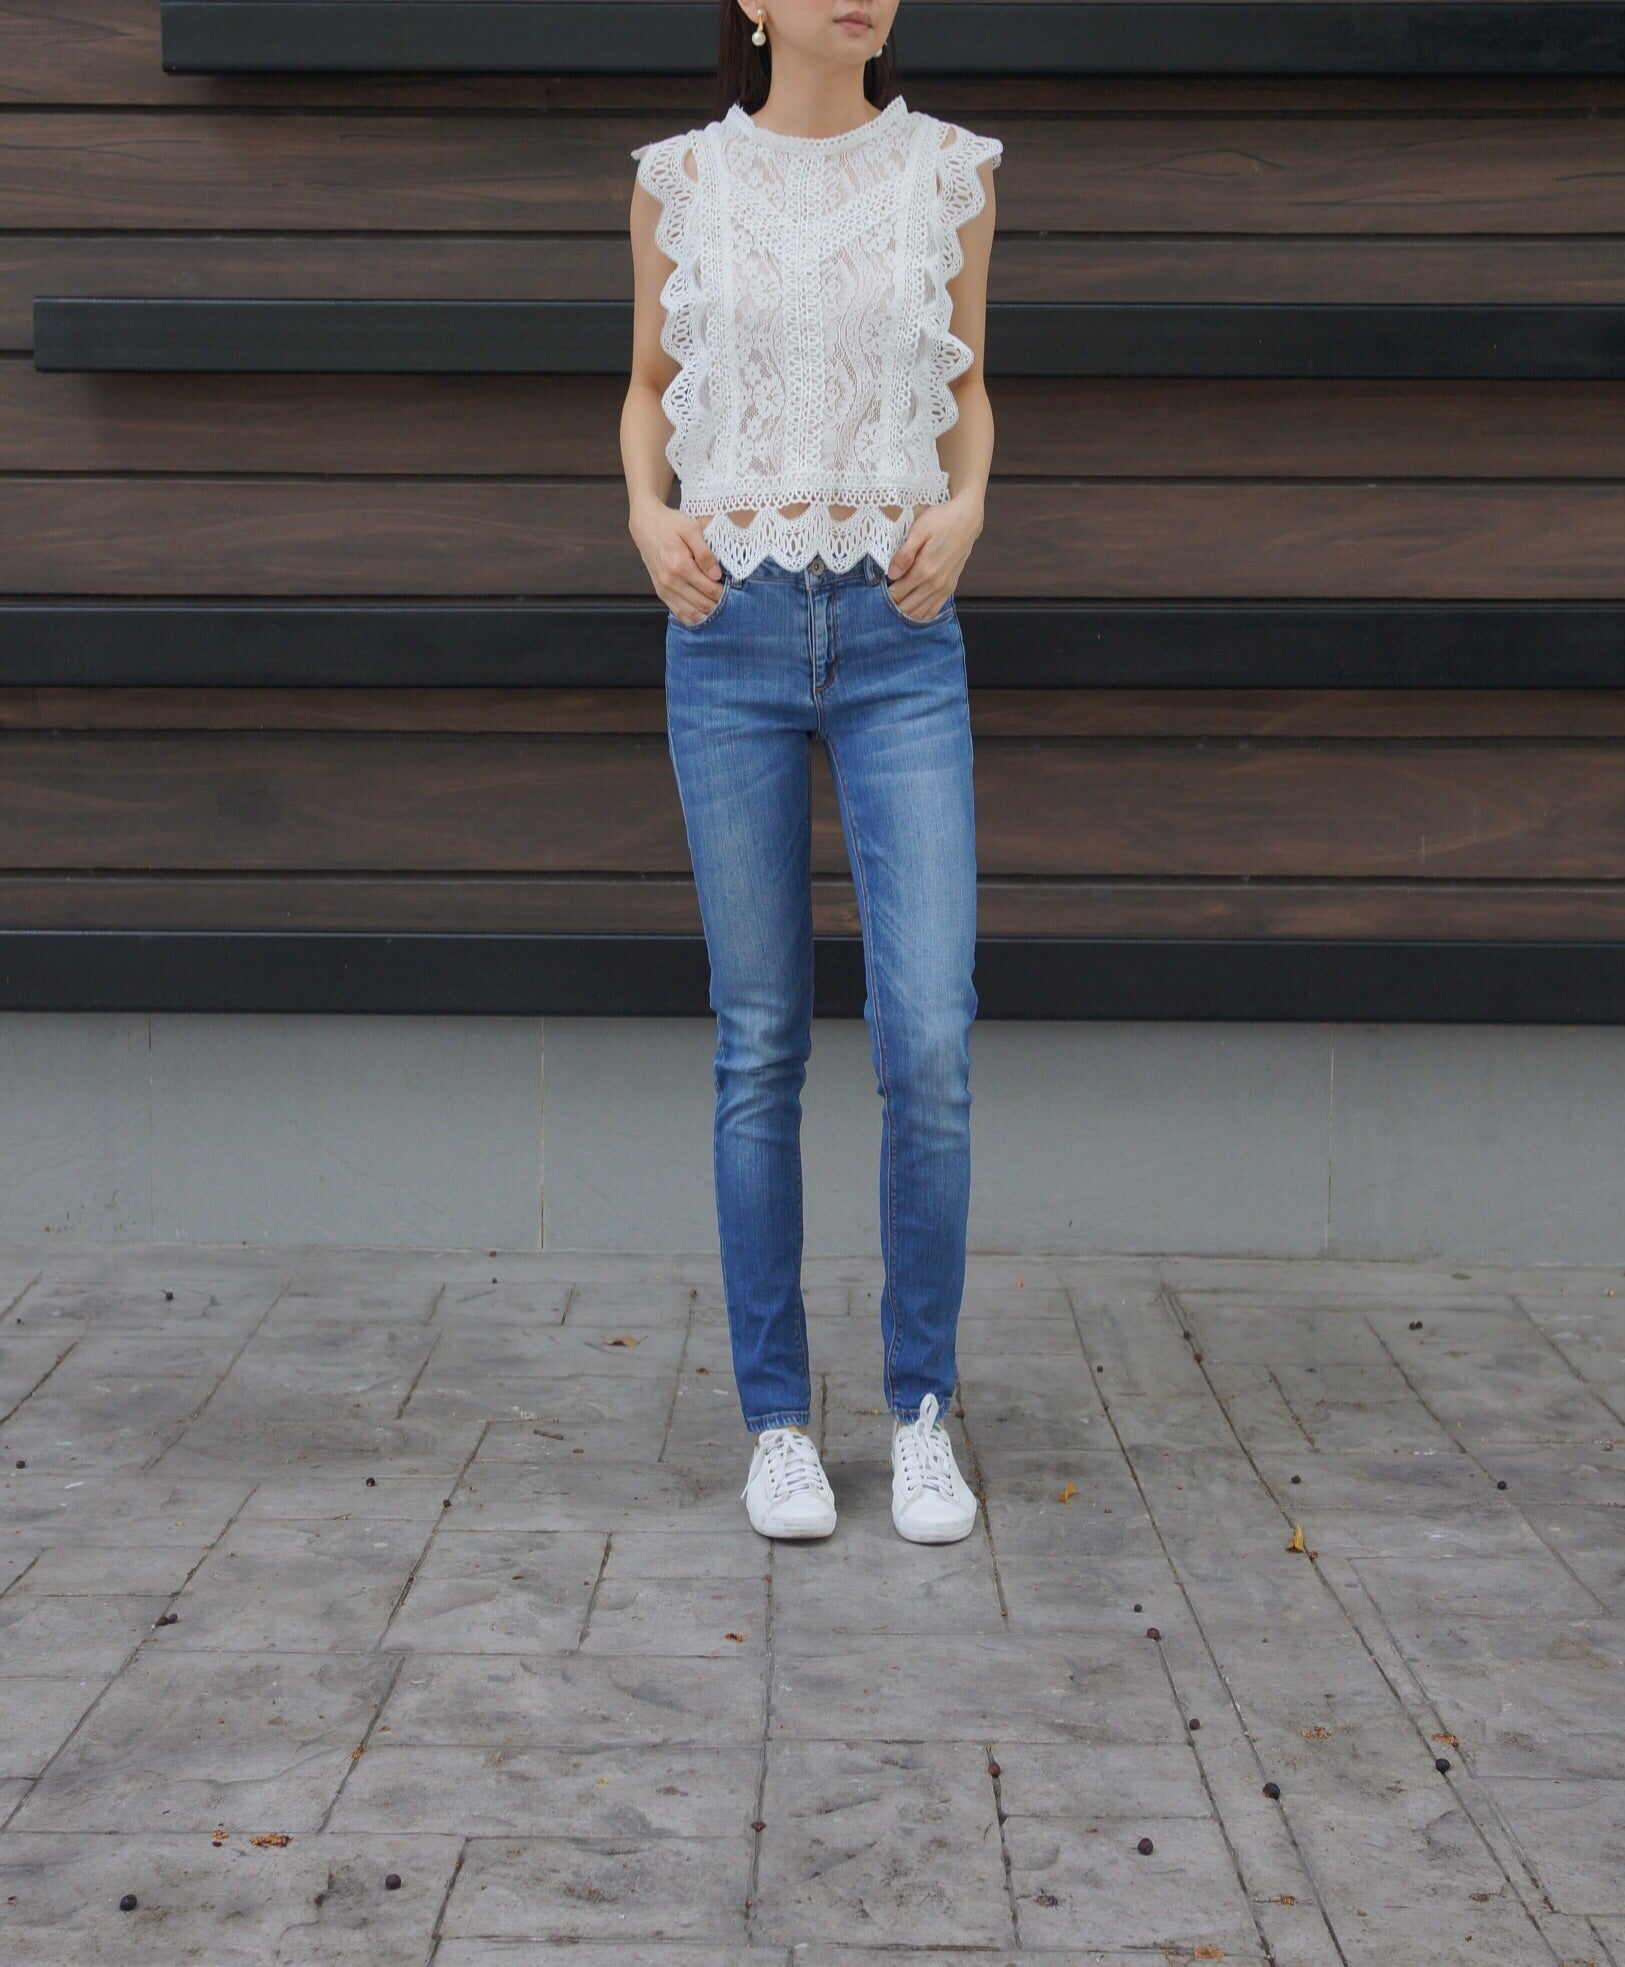 Ira Lace Top in White